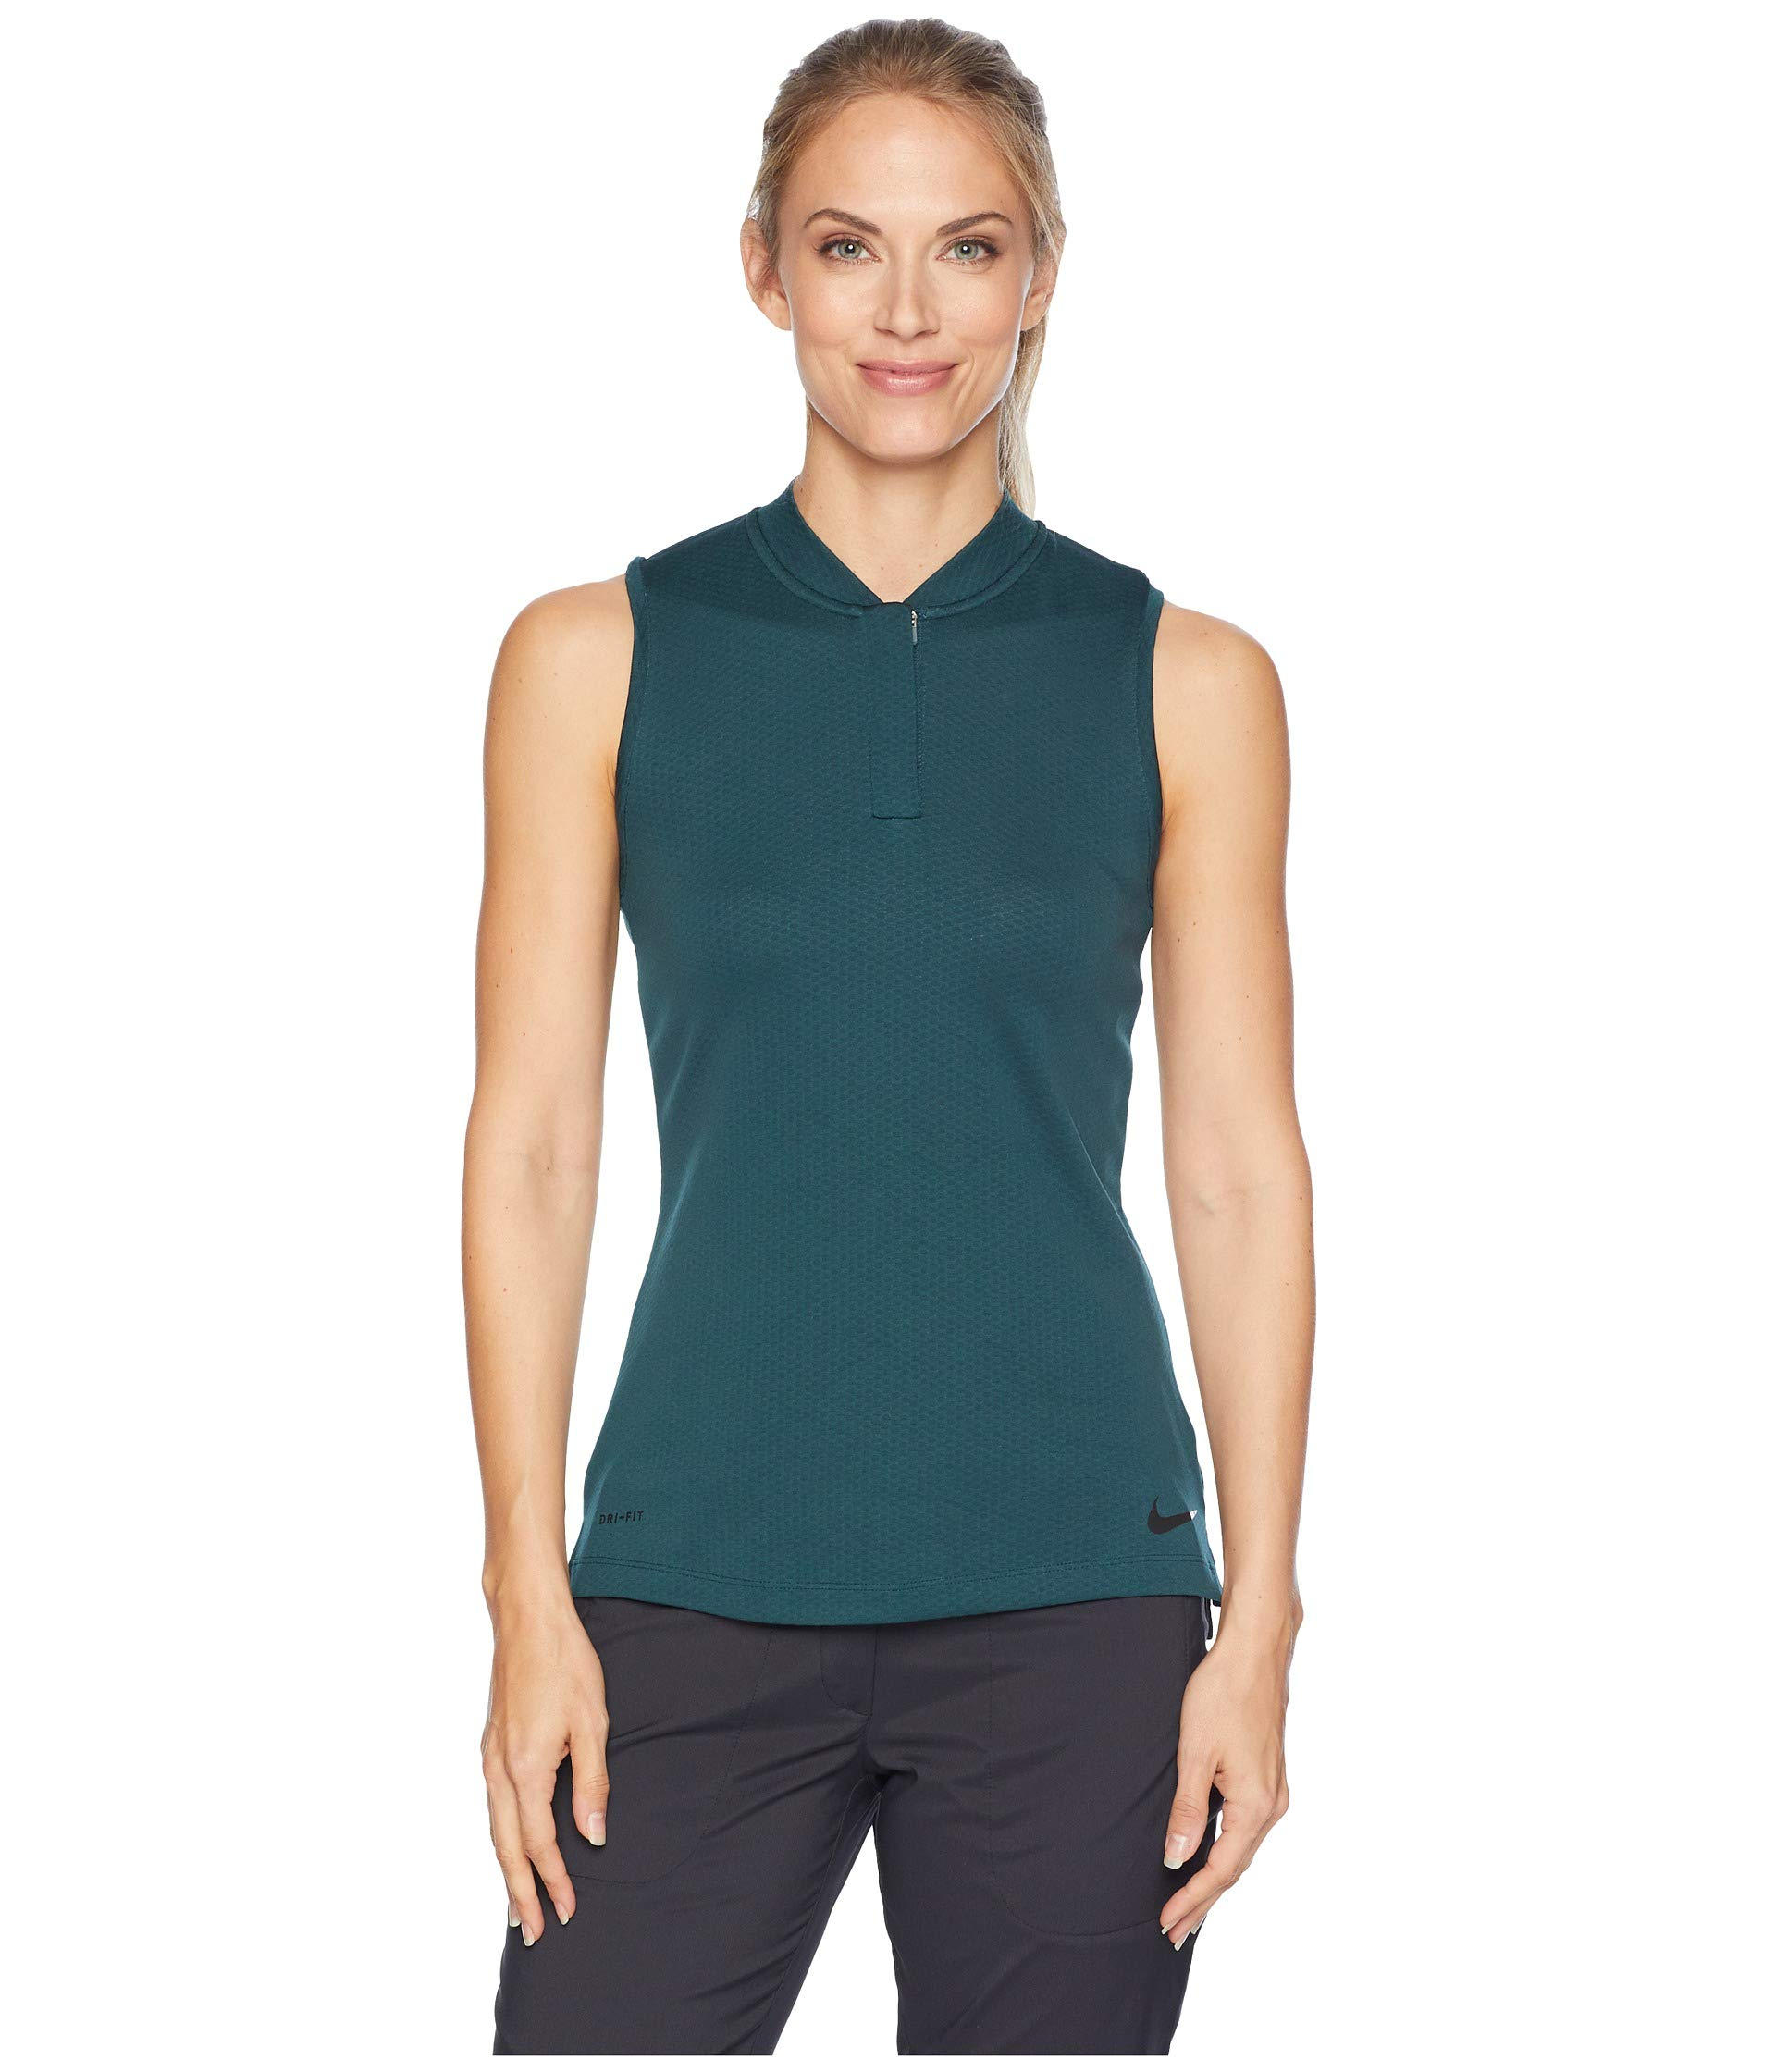 NIKE Women's Sleeveless Blade Dry Golf Polo (Midnight Spruce, Large) by Nike